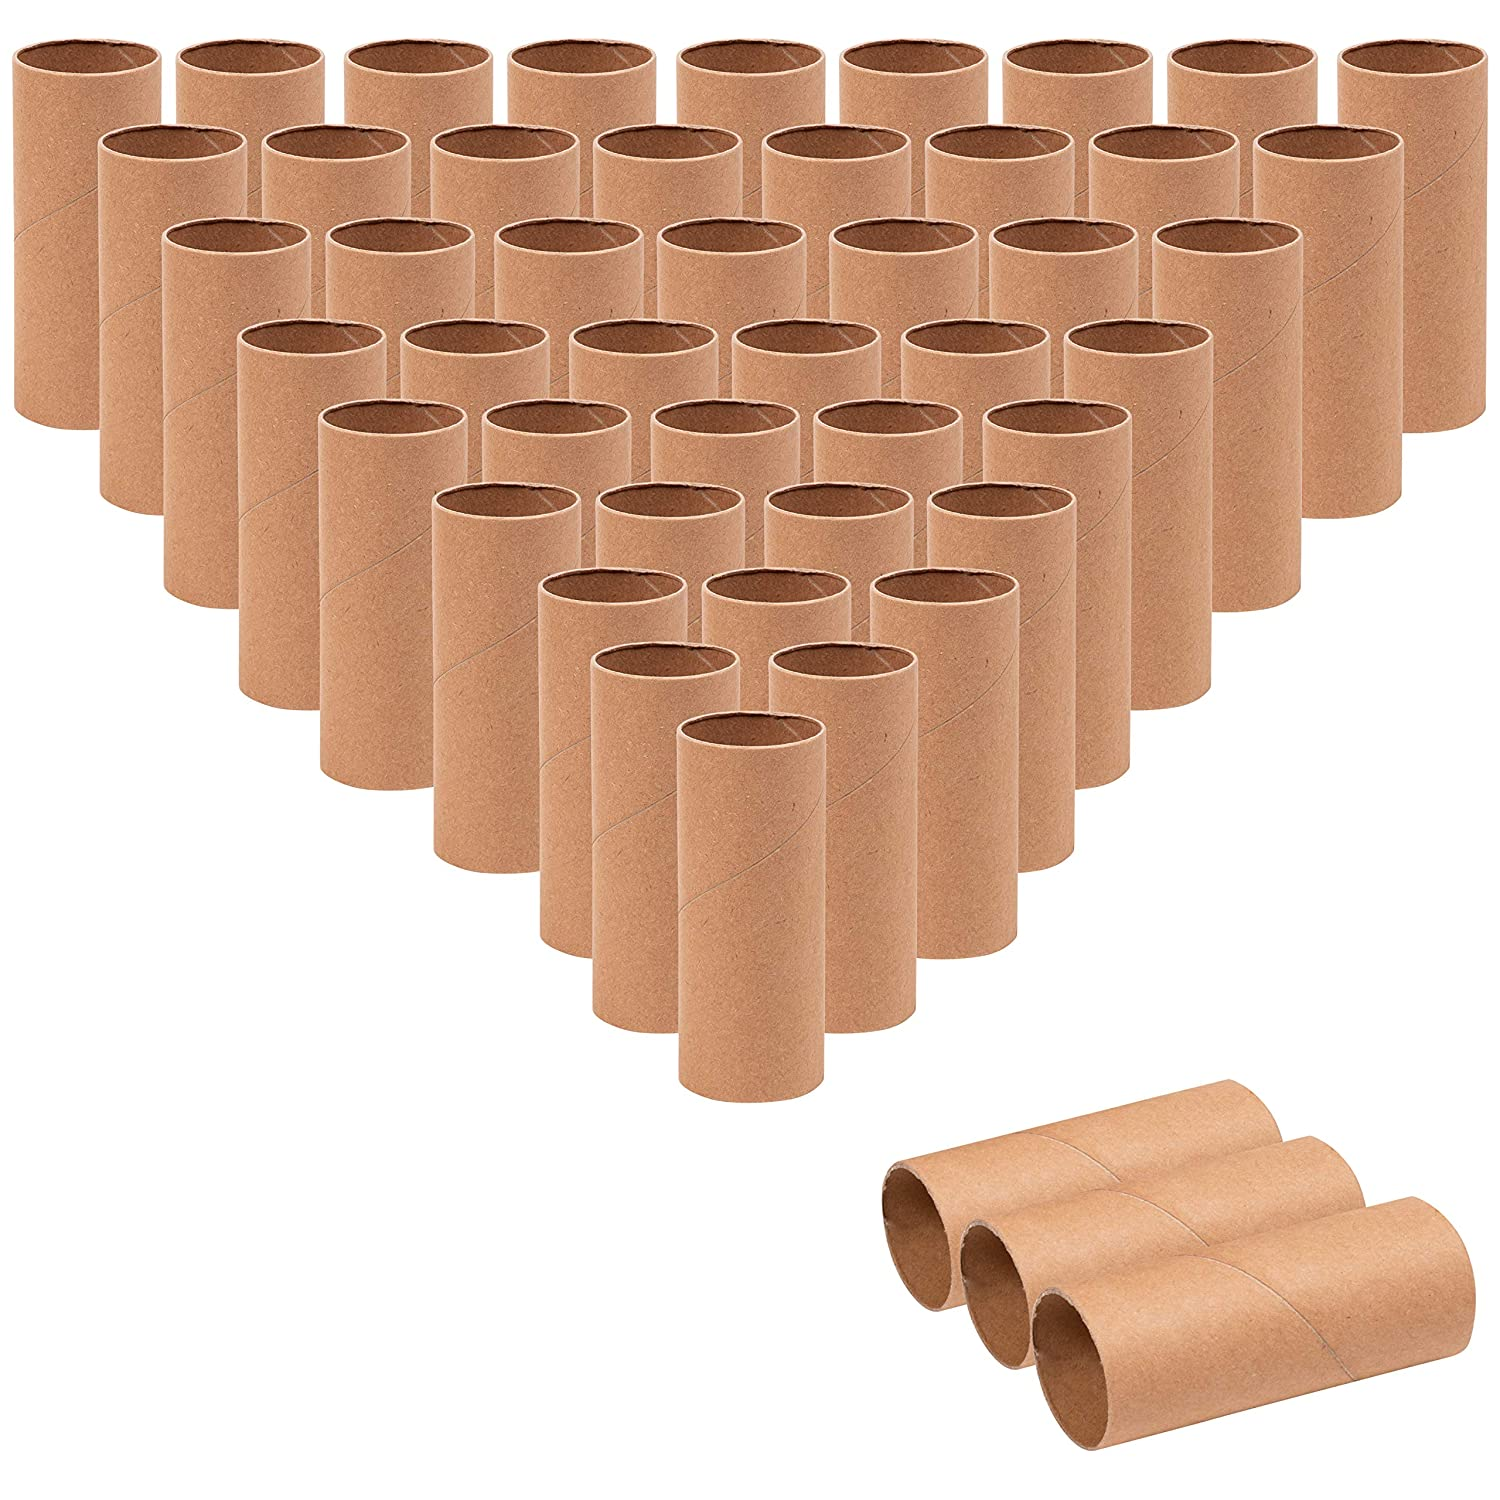 and Classroom Projects Brown 1.6 x 3.95 Inches Genie Crafts 48-Pack Cardboard Paper Tubes for Kids DIY